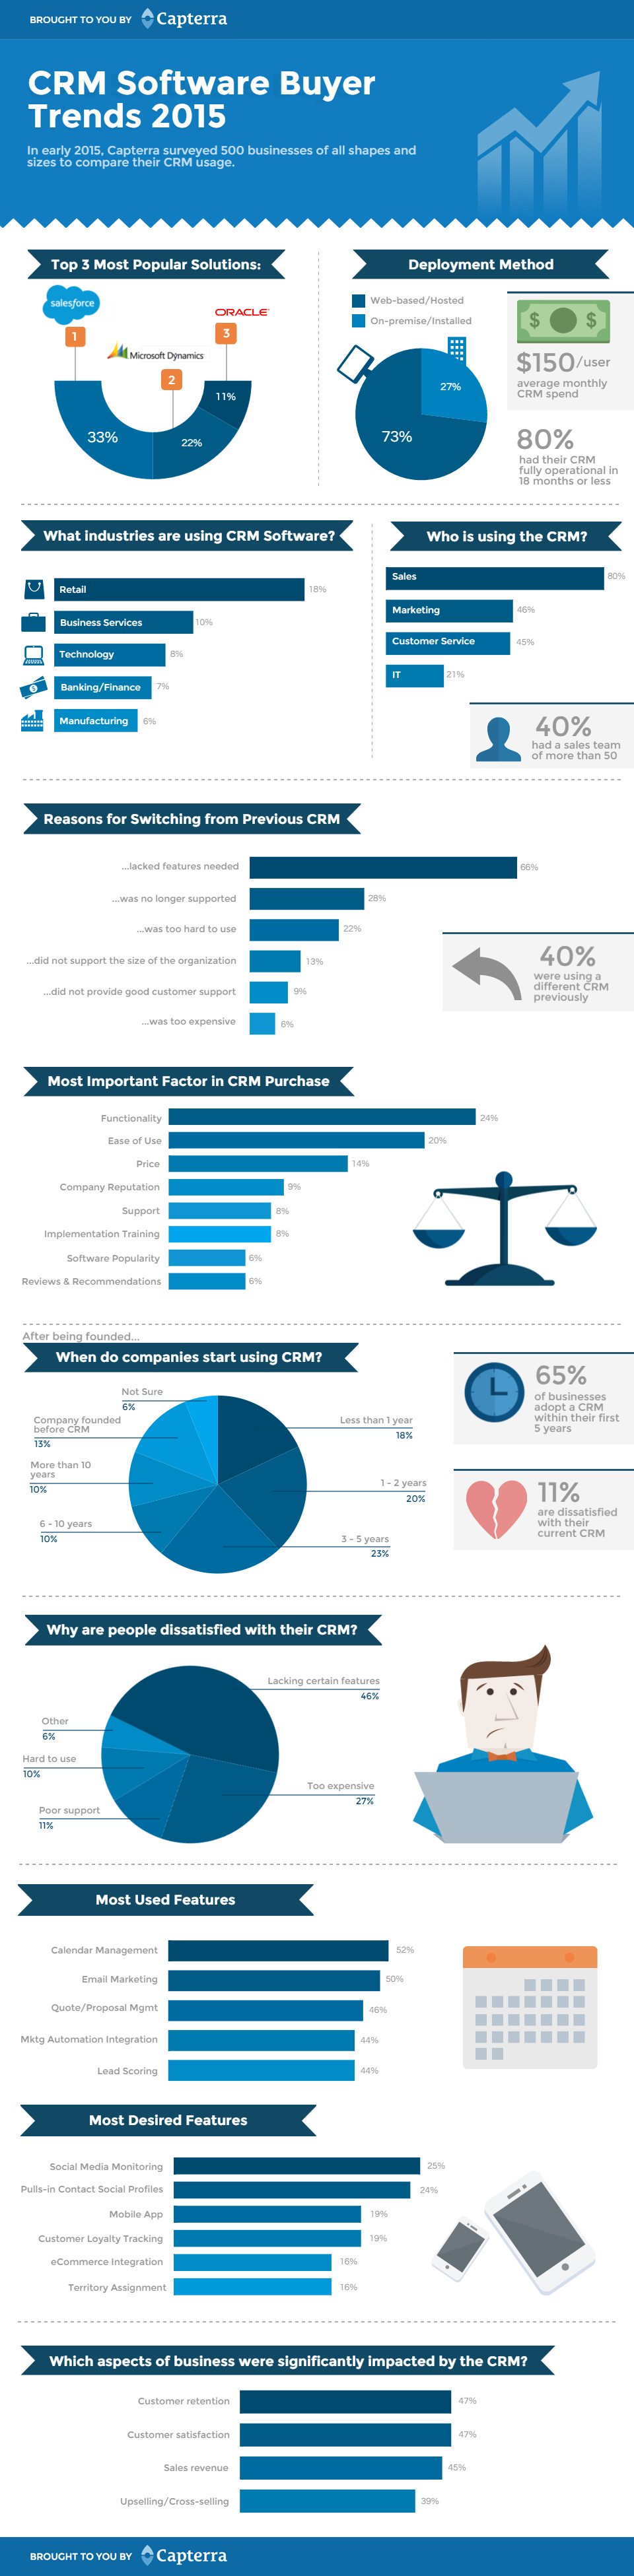 crm-buyer-trends-infographic-v001